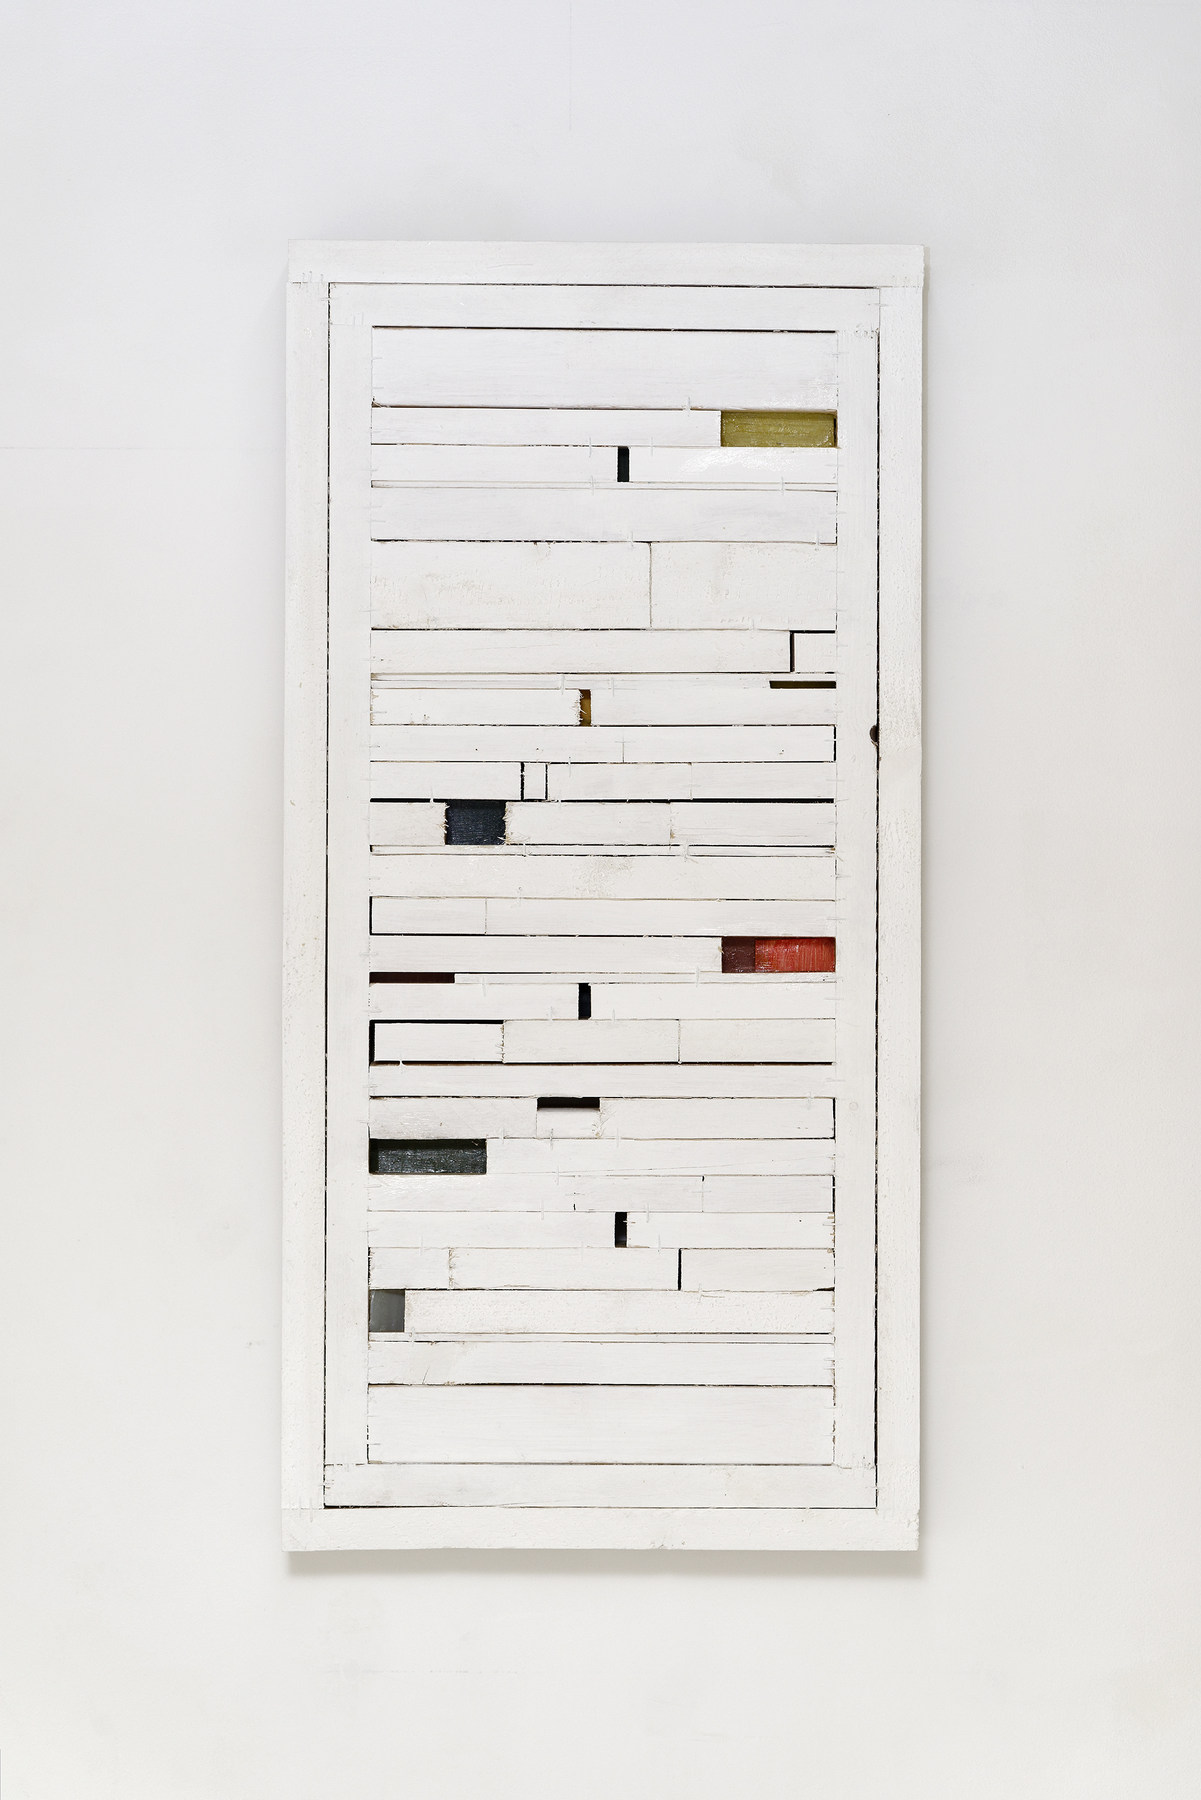 Florian Schmidt, Untitled(Whitespace)03